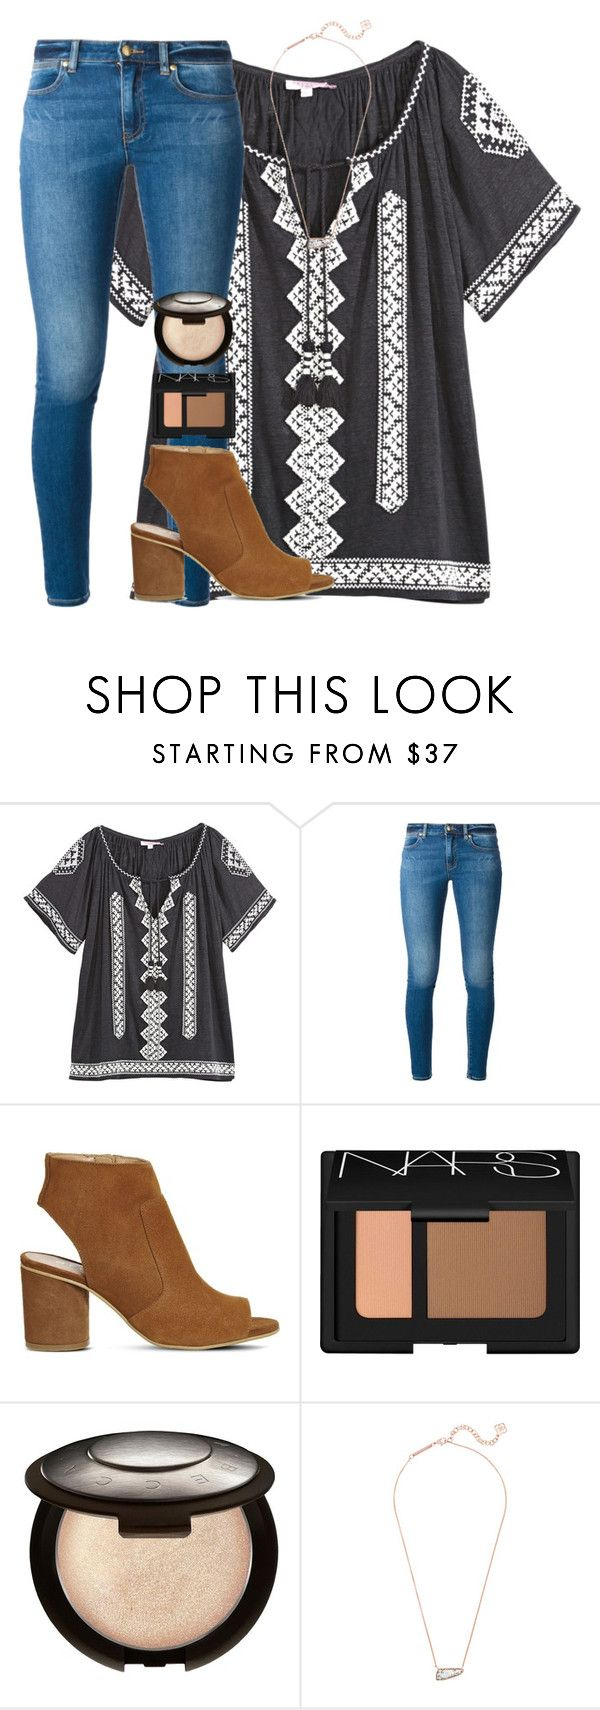 """""""Horrible day:("""" by emmagracejoness ❤ liked on Polyvore featuring Calypso St. Barth, MICHAEL Michael Kors, Office, NARS Cosmetics, Becca and Kendra Scott"""